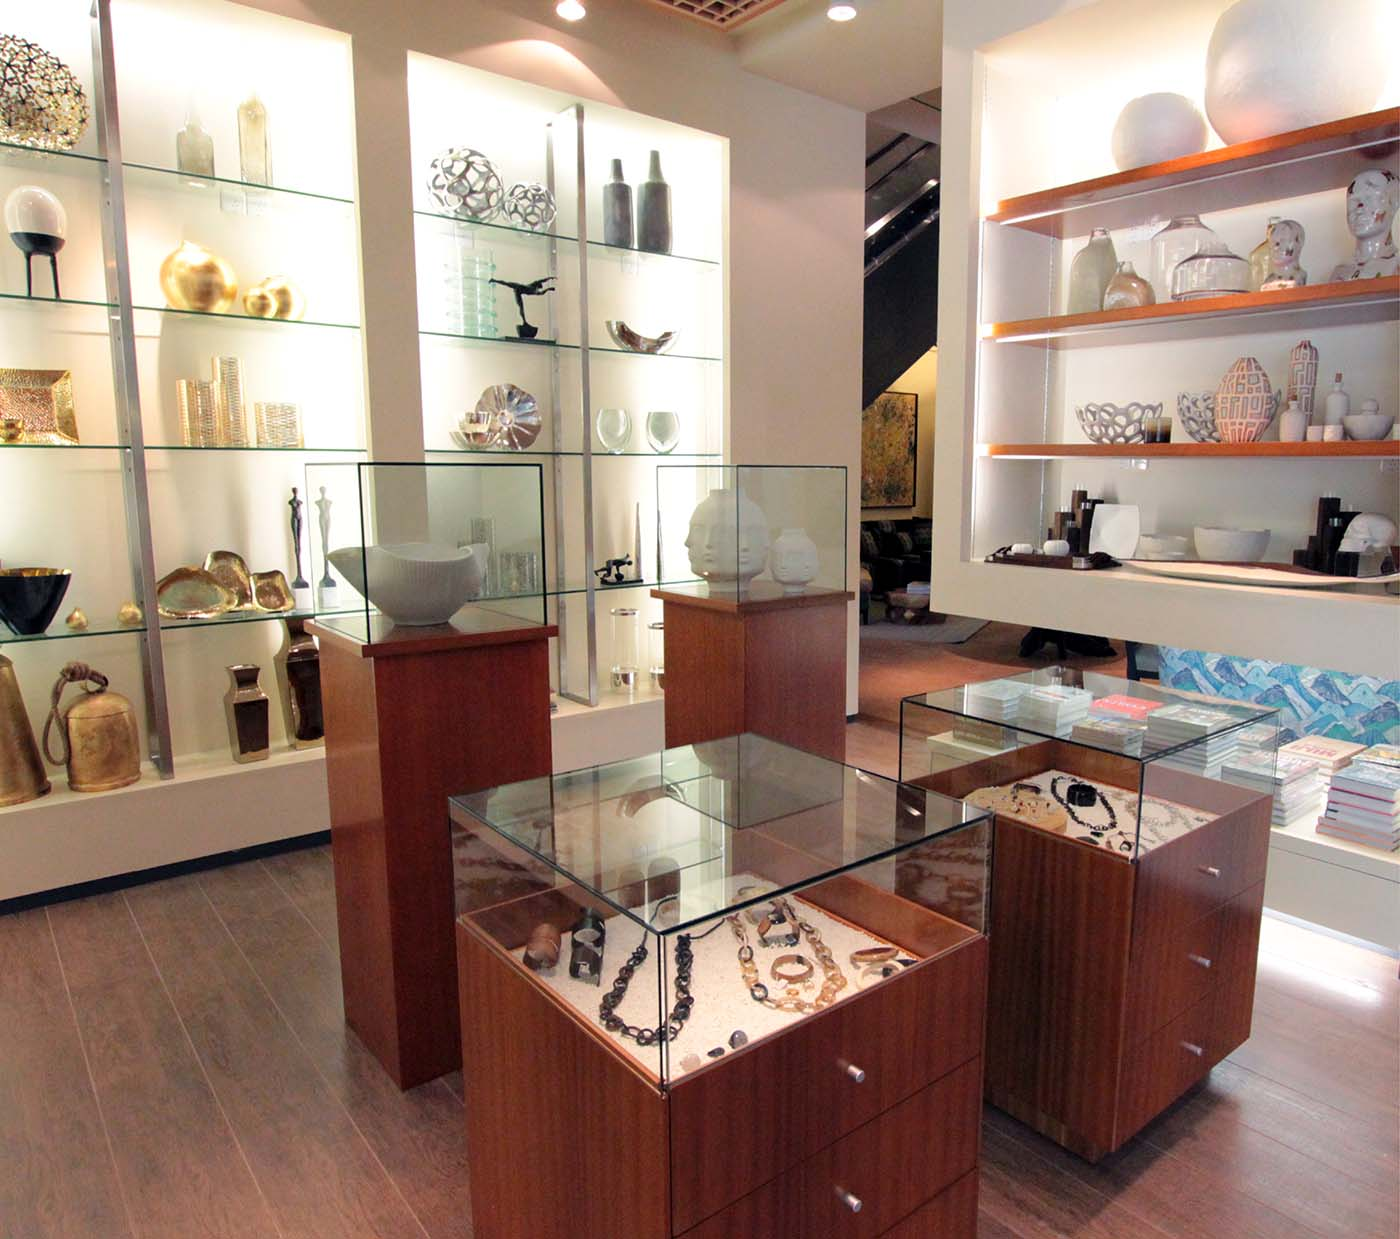 Chinese retail shop showcasing art objects.